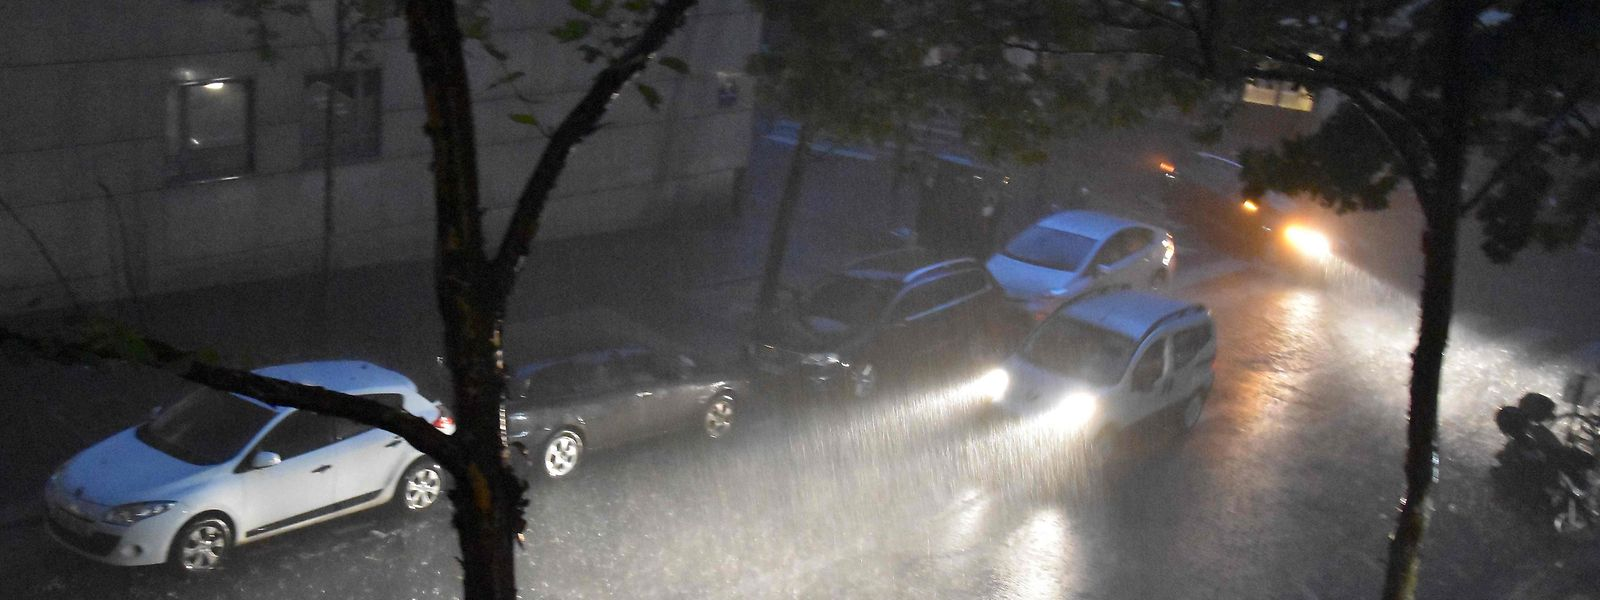 A person drives a vehicle under a heavy rainfall on July 9, 2017 in the 20th district of Paris.  Paris subway authorities closed metro stations due to flooding after thunderstorms and heavy rain pounded the French capital, officials said on July 10, 2017.  A violent two-hour storm struck the city late Sunday, forcing the closure of about 15 stations due to flooding, although they reopened Monday morning and traffic was normal, the Paris transport authority, the RATP, said. / AFP PHOTO / Christophe DELATTRE